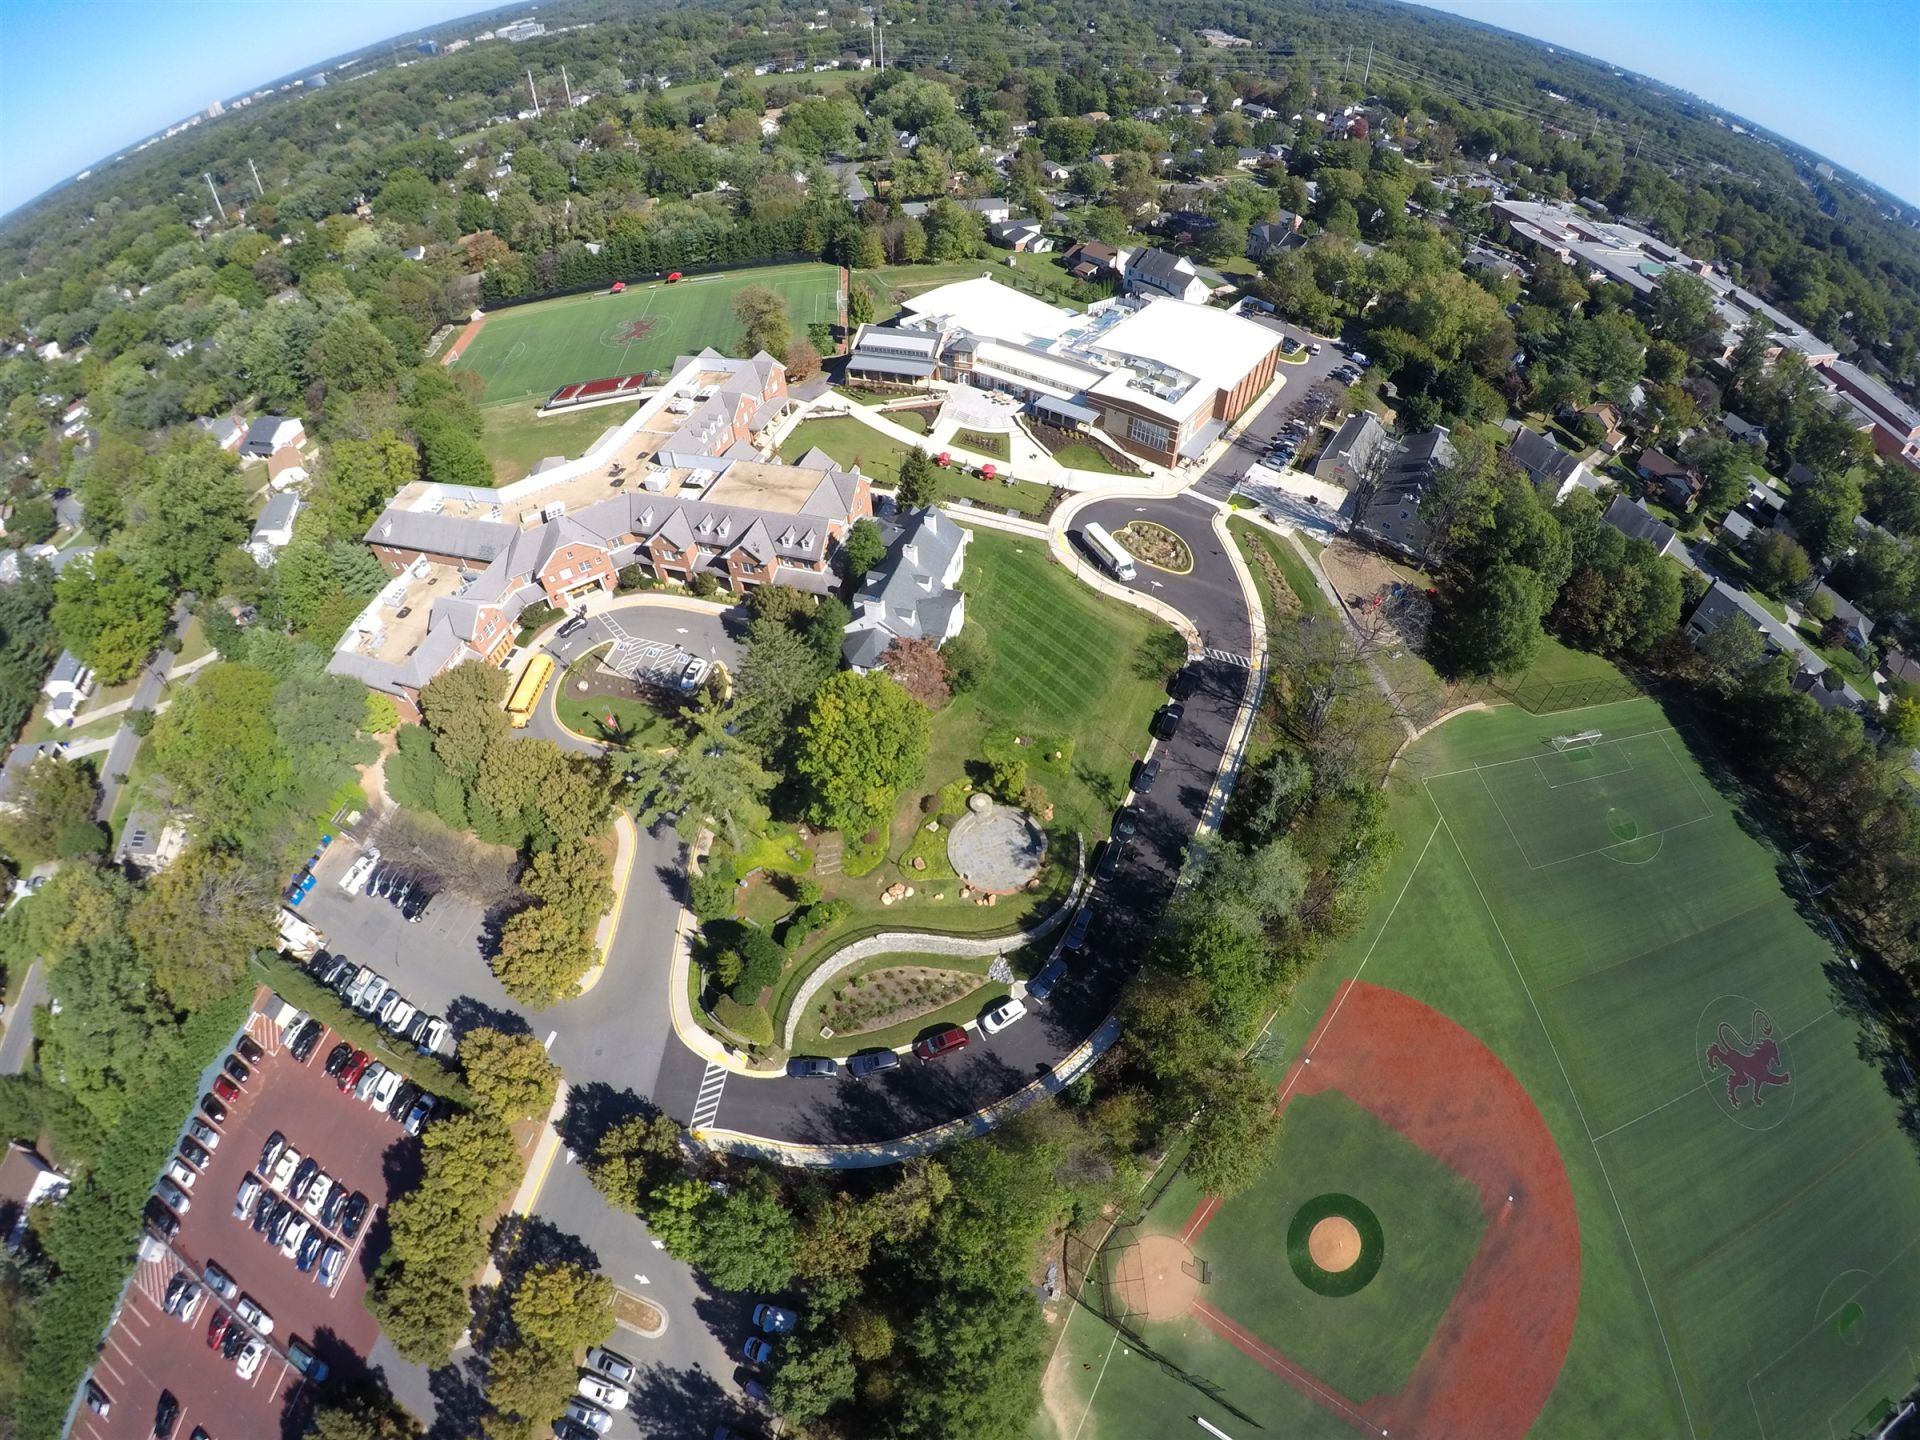 Aerial photograph of school campus - St. Andrew's Episcopal School